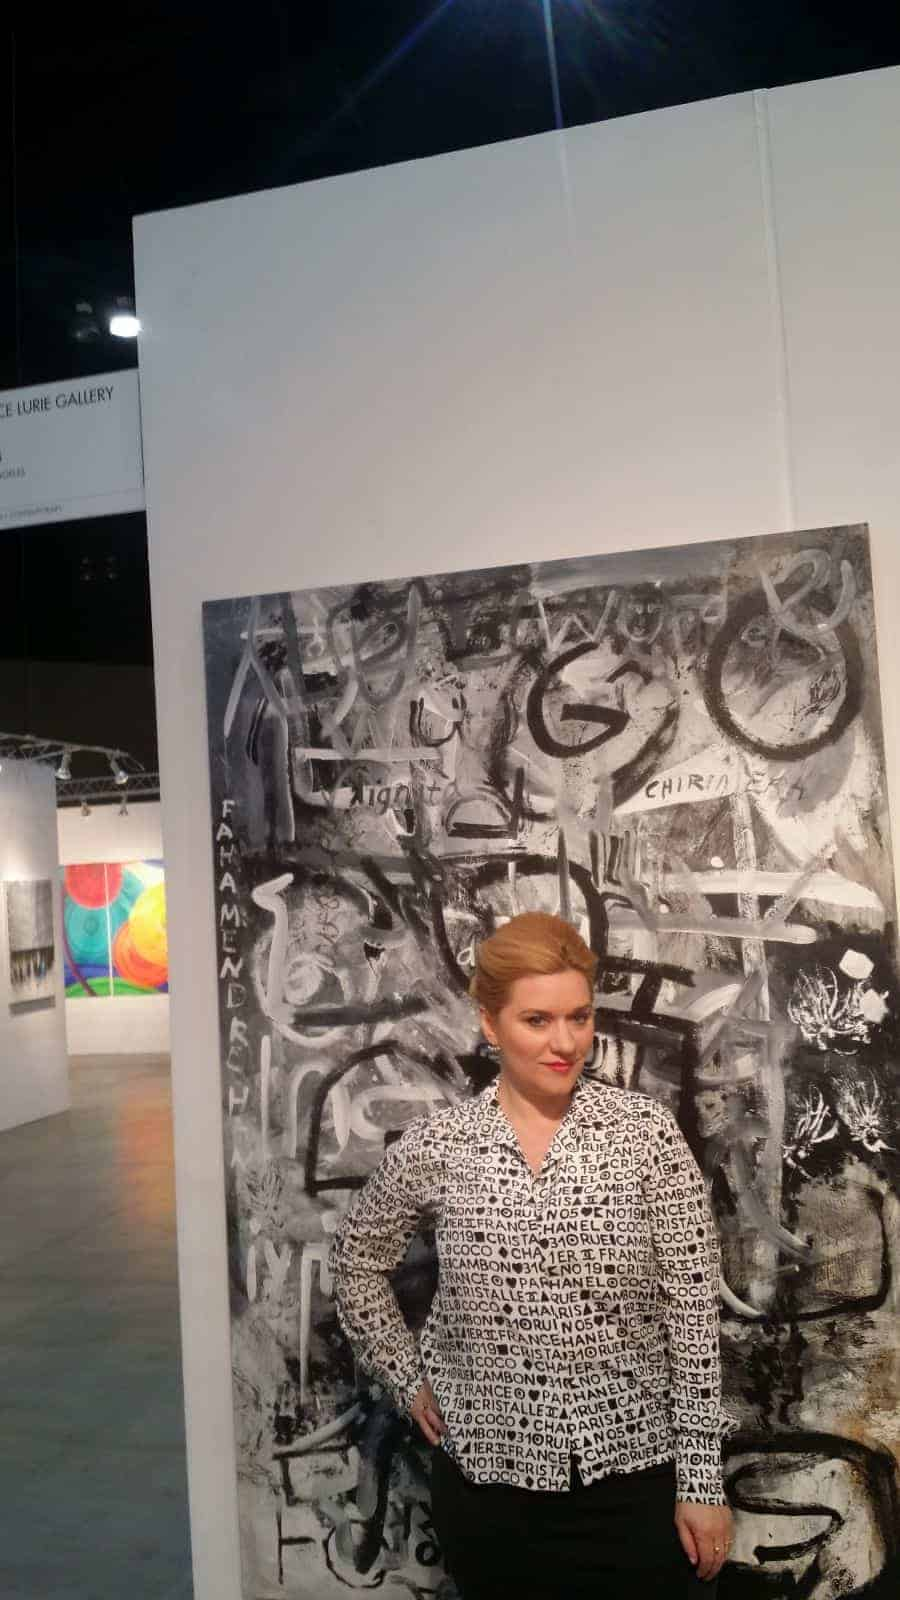 Artist Moira Cue with her work Dignity II, 4'x6', oil on masonite, at the 2018 LA Art Show, Bruce Lurie Gallery booth. Photo: (c). Bruce Edwin 2018.